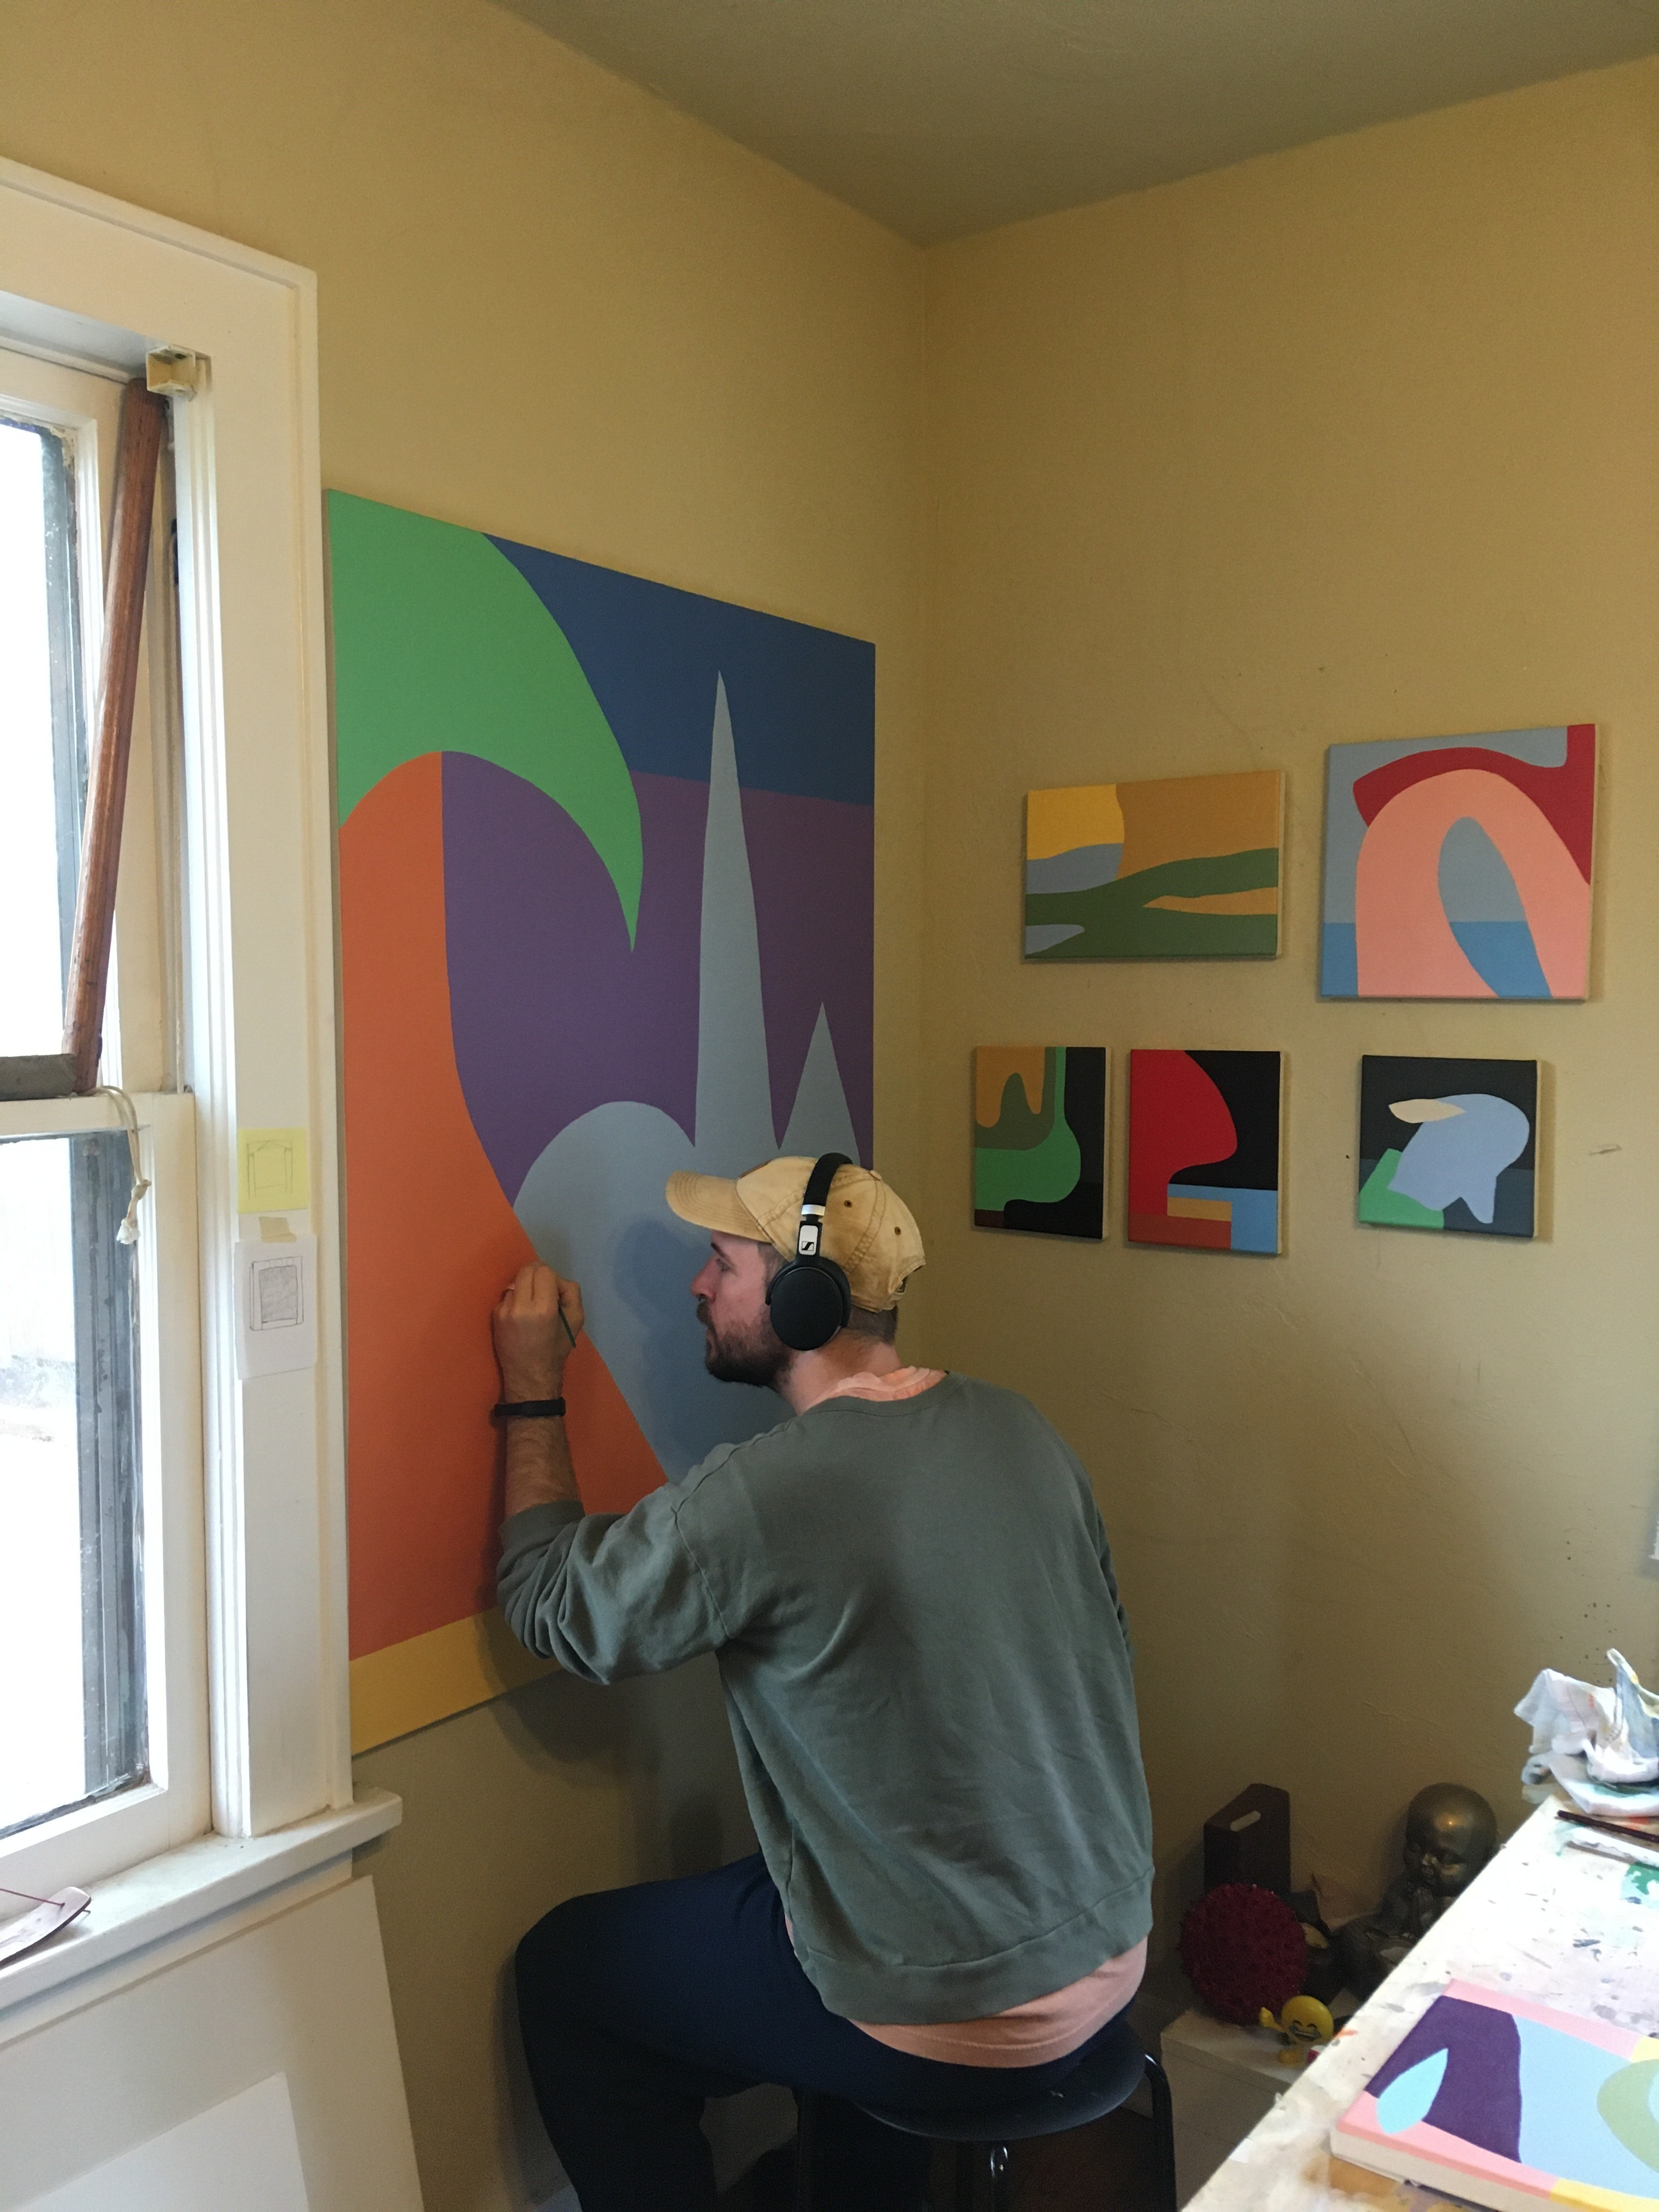 A figure wearing a baseball cap and headphones paints a large abstract landscape on a canvas in an art studio